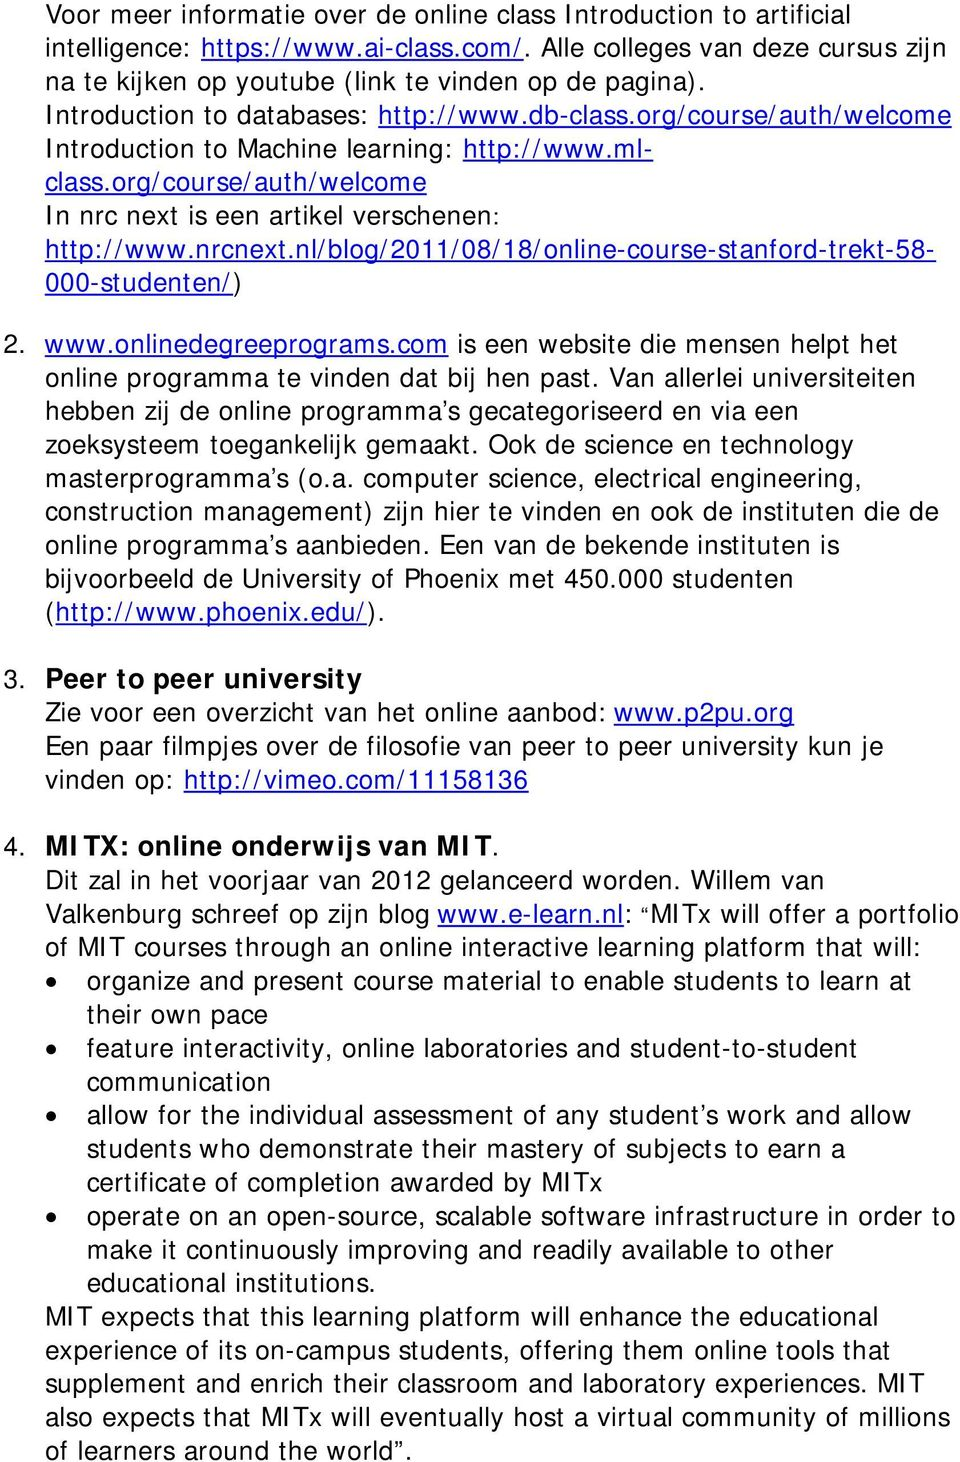 nrcnext.nl/blog/2011/08/18/online-course-stanford-trekt-58-000-studenten/) 2. www.onlinedegreeprograms.com is een website die mensen helpt het online programma te vinden dat bij hen past.